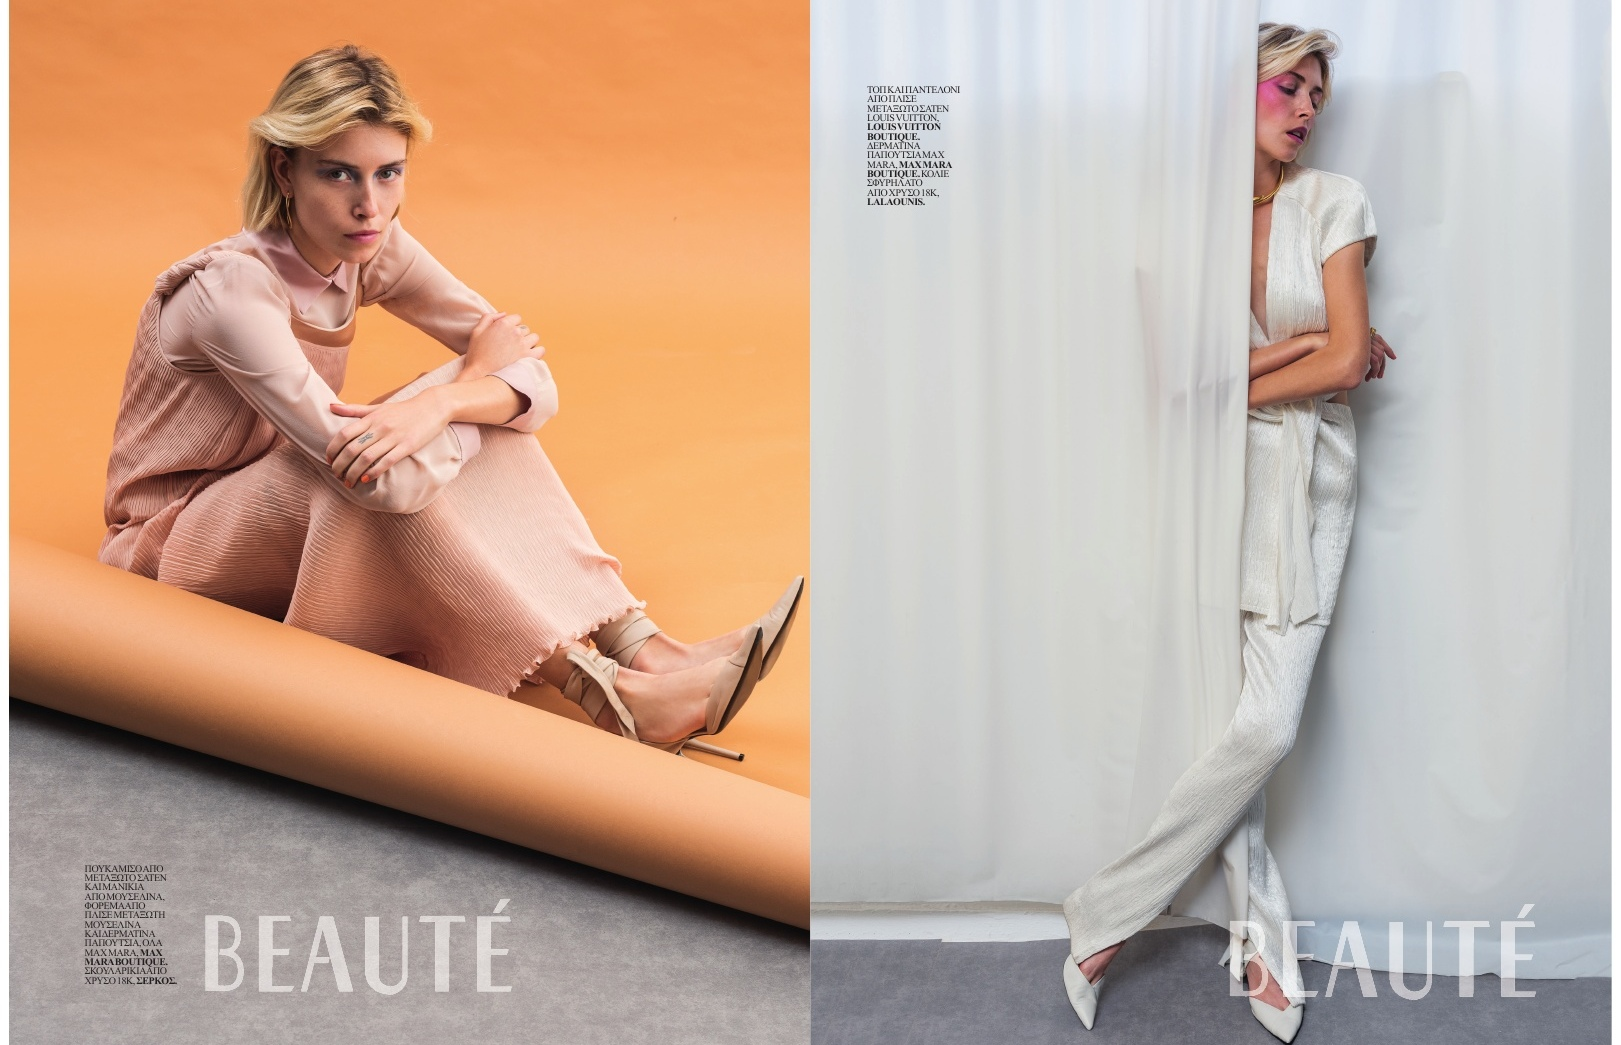 Veronika for Beaute magazine